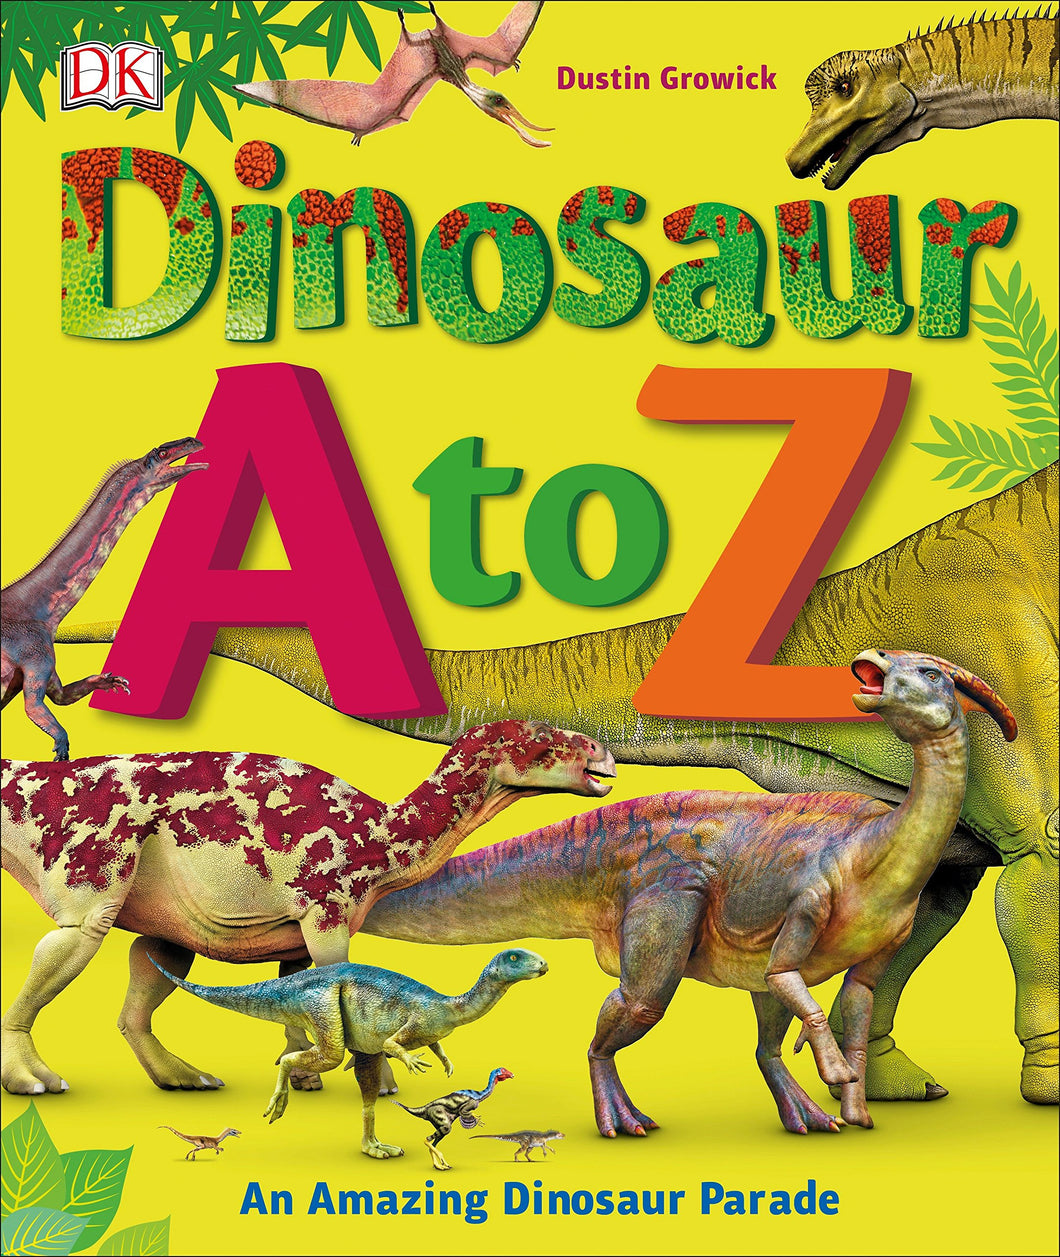 Junior book of alphabetically listed dinosaurs  with realistic illustrations, bright yellow cover with a parade of dinosaurs.